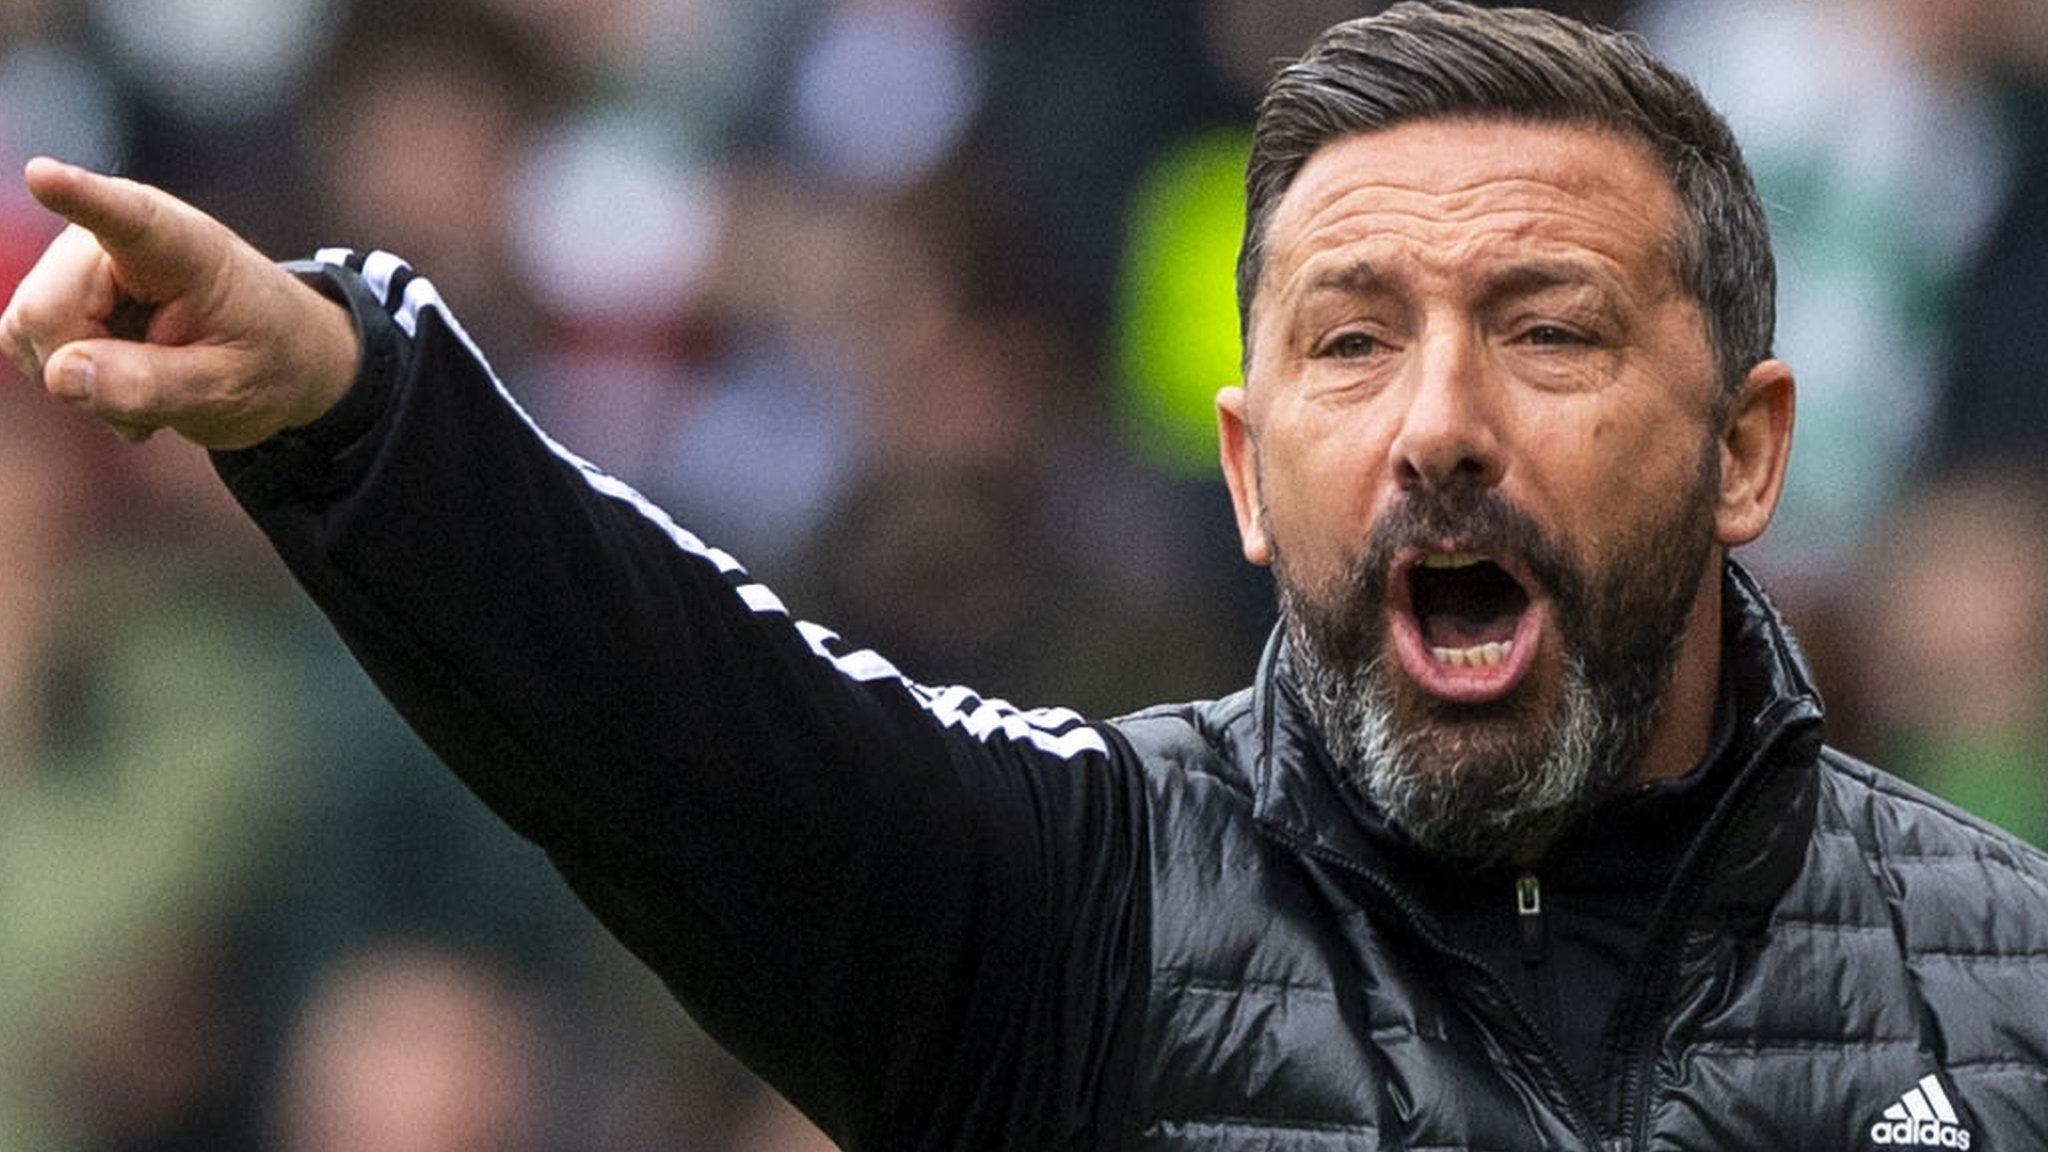 Stopping sectarian abuse at football 'not hopeless cause' - McInnes